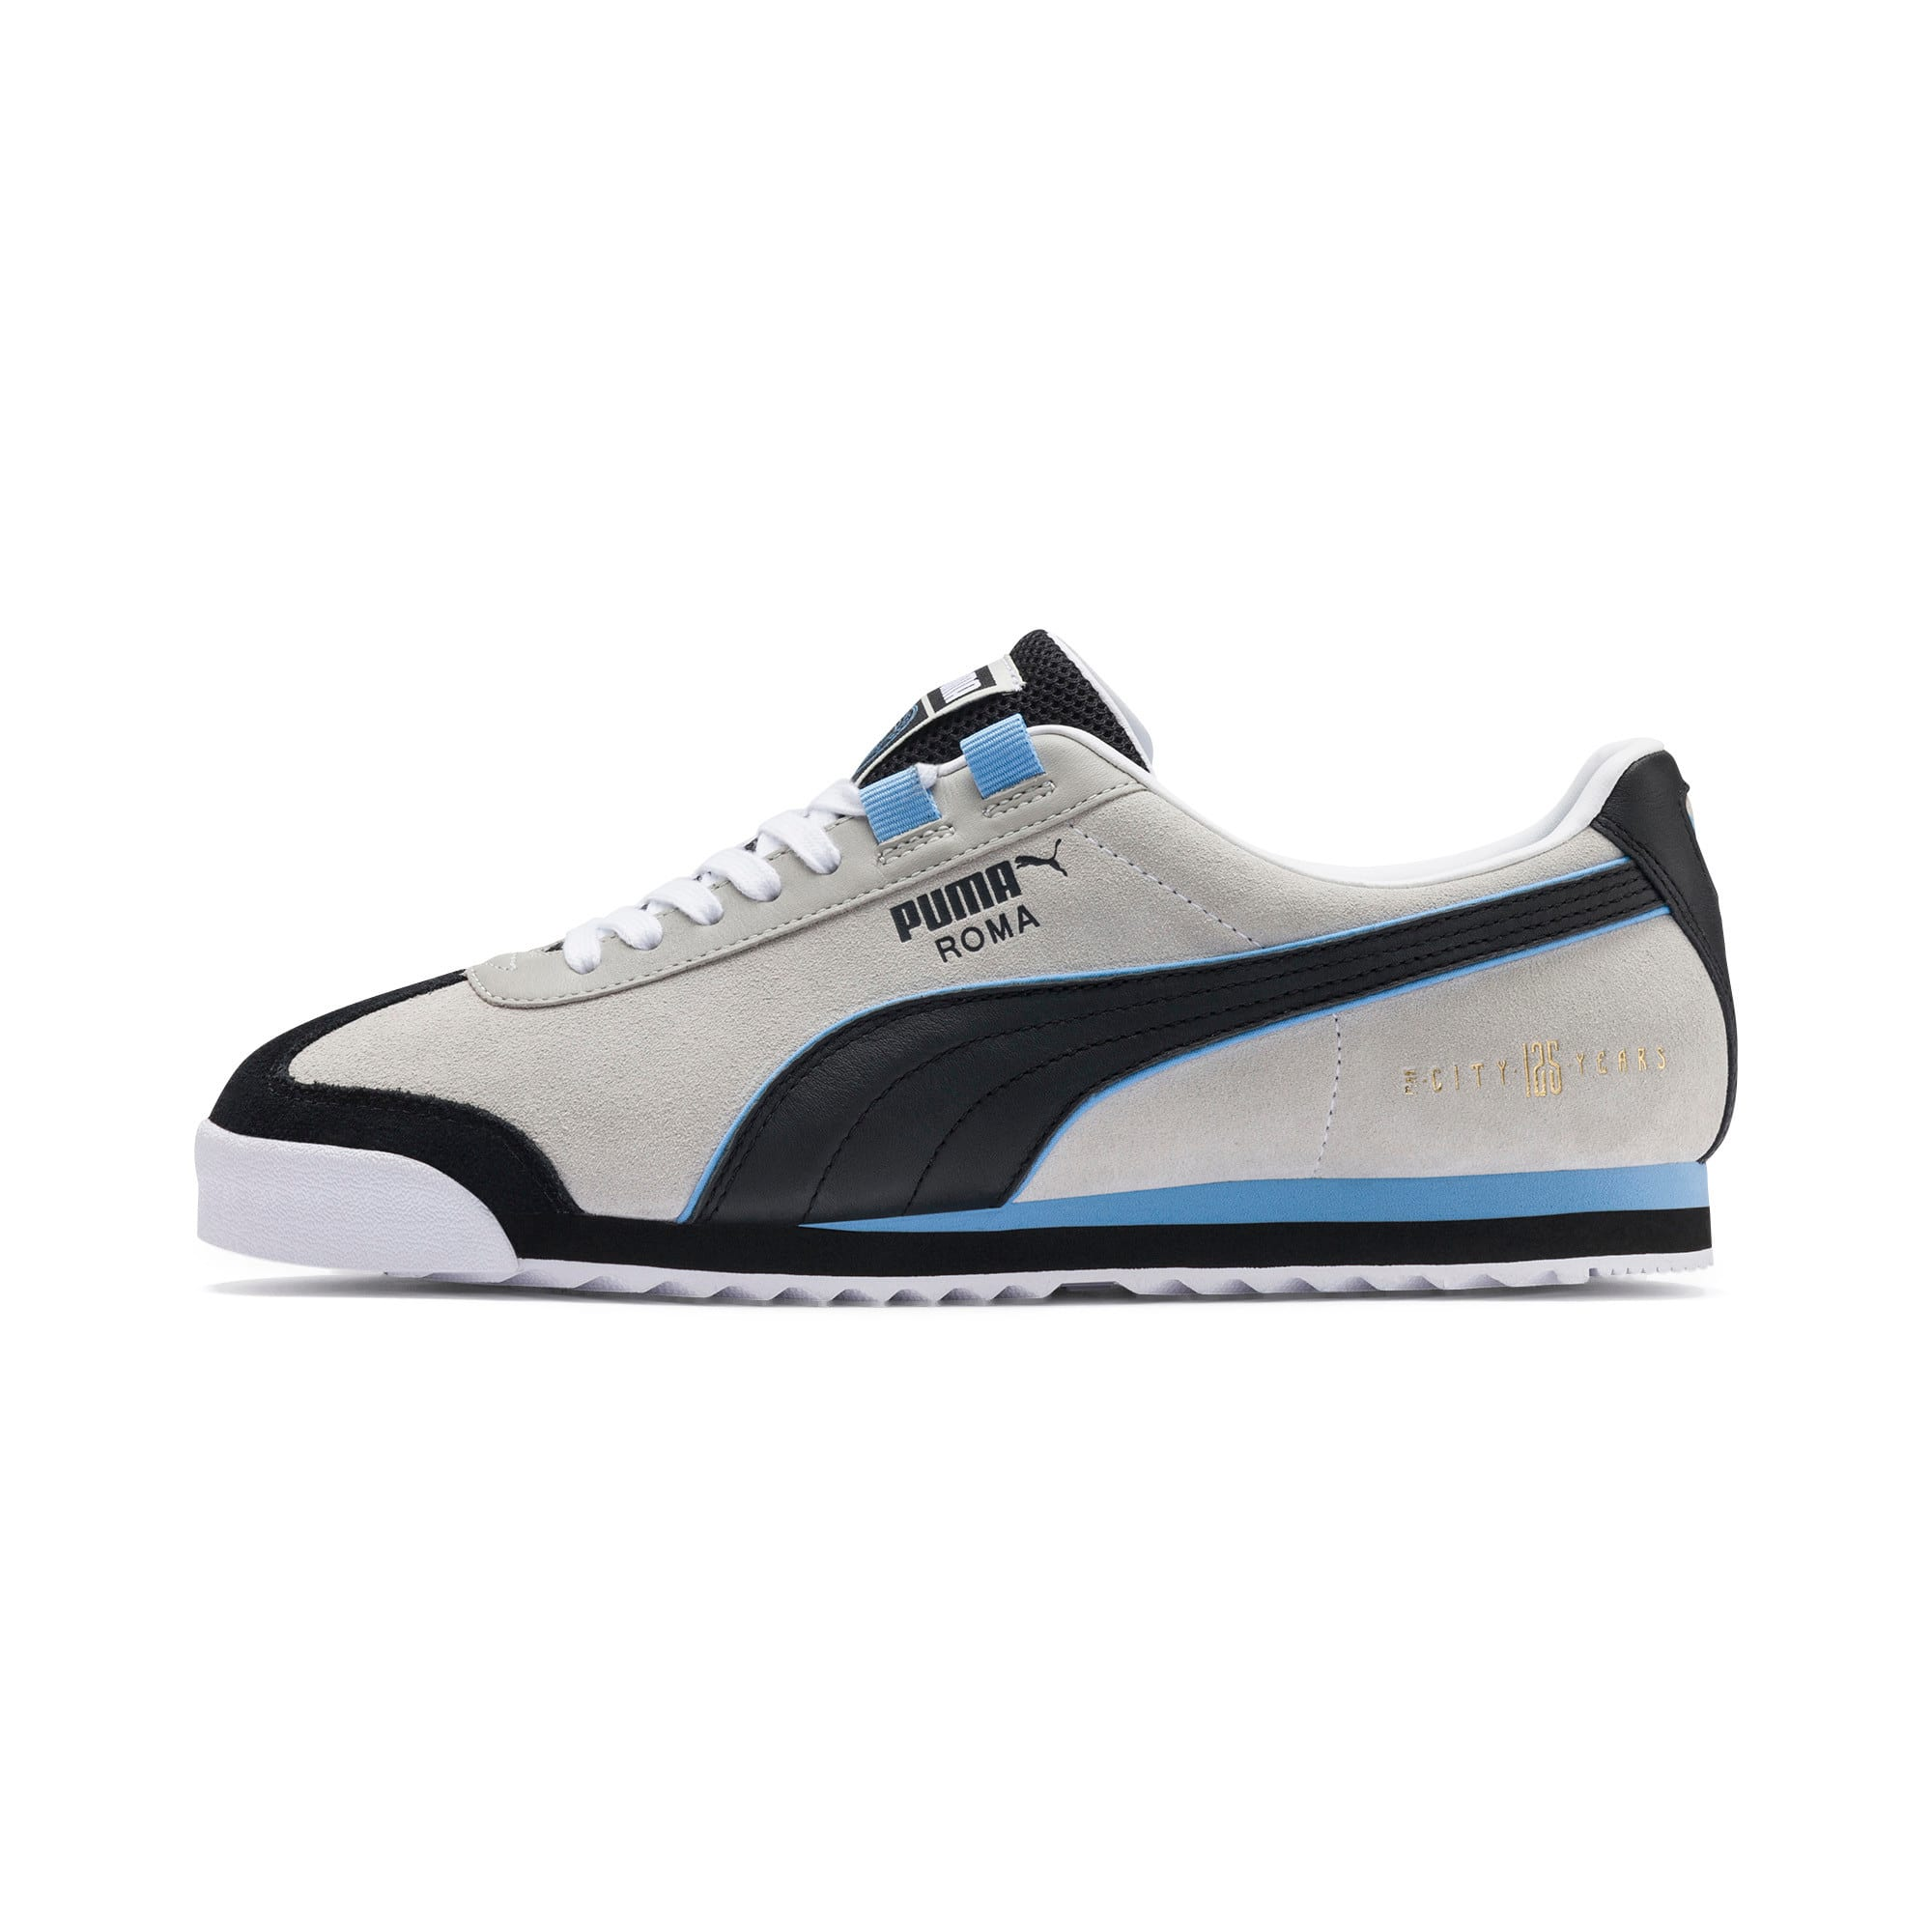 Thumbnail 1 of Roma x Manchester City sportschoenen, Gray Violet-Team Light Blue, medium